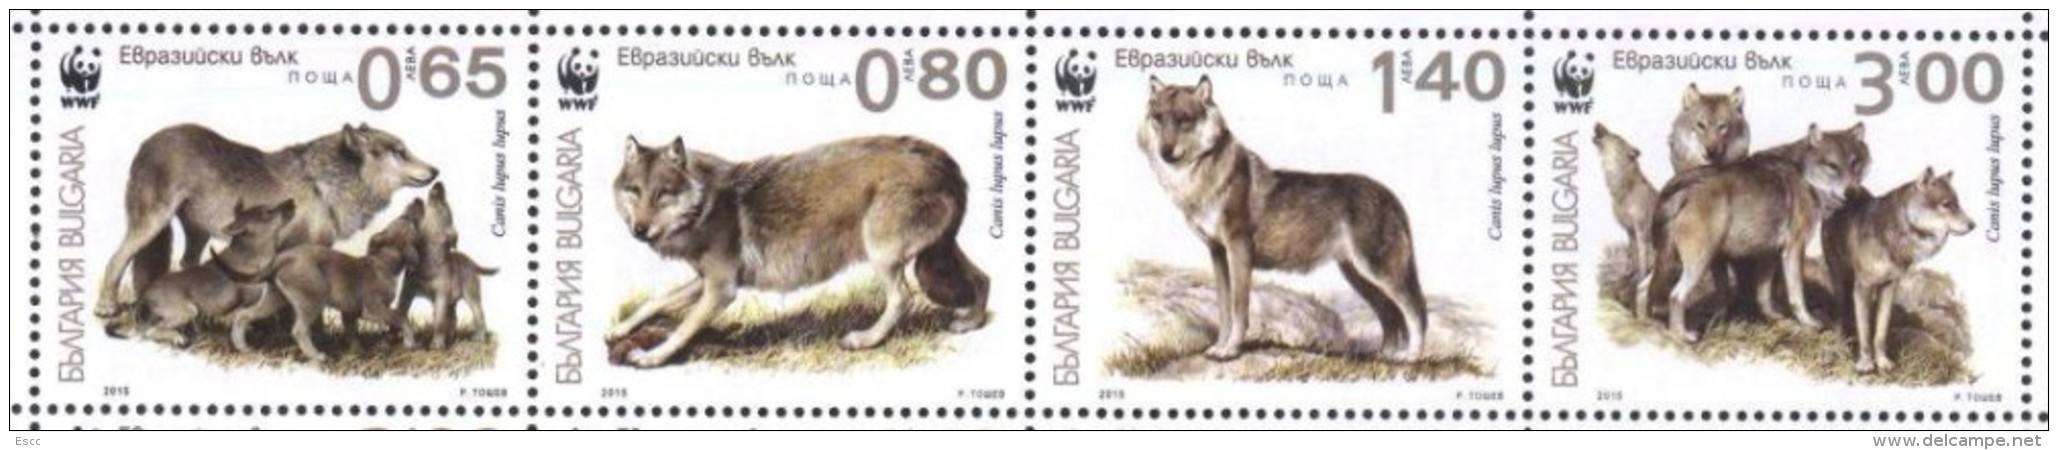 Mint  Stamps Fauna WWF Wolves 2015  From Bulgaria - W.W.F.